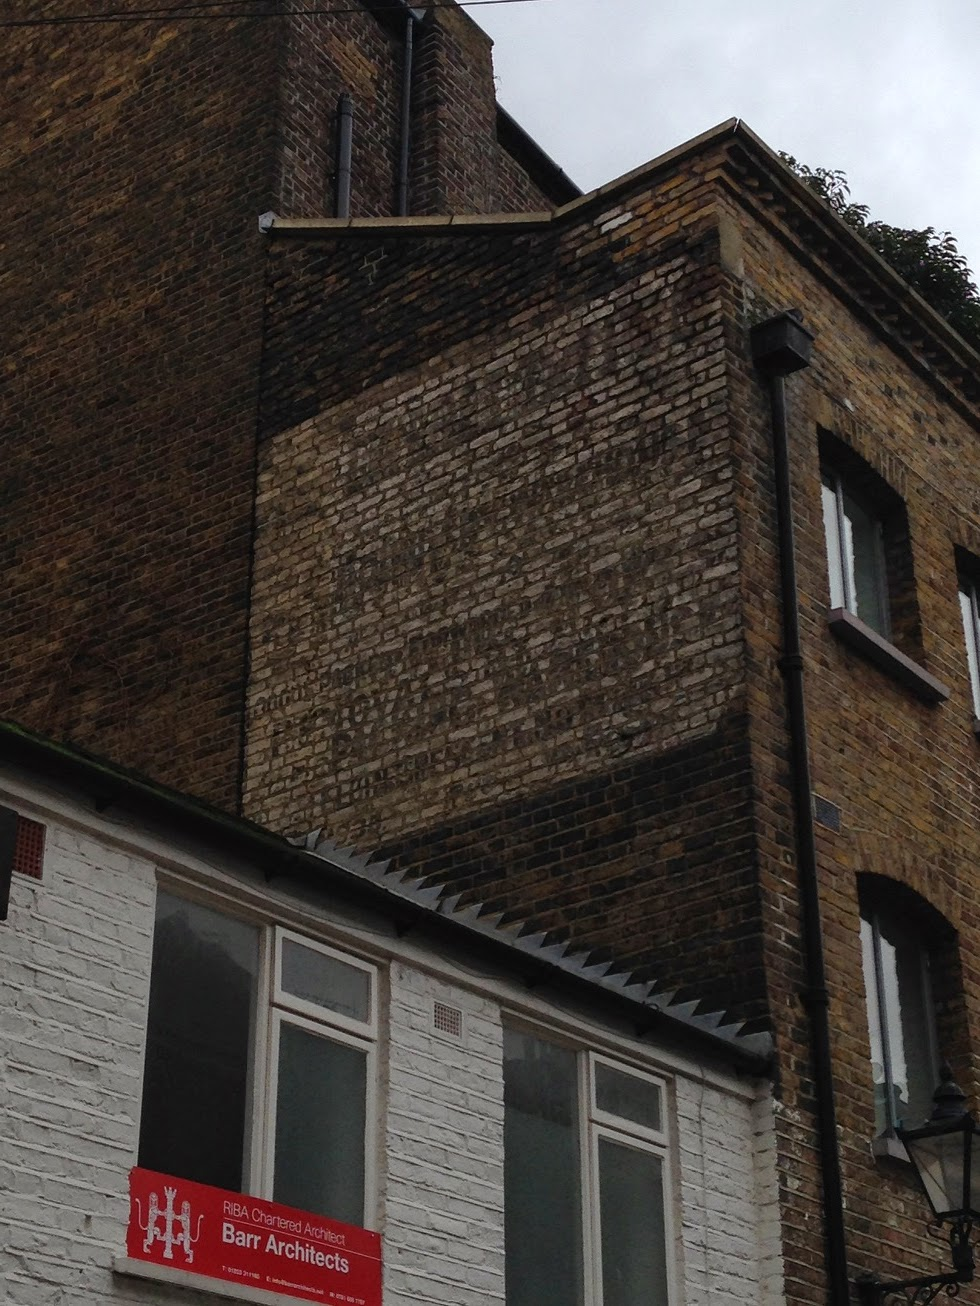 Ghost sign in Powis Mews, London W2